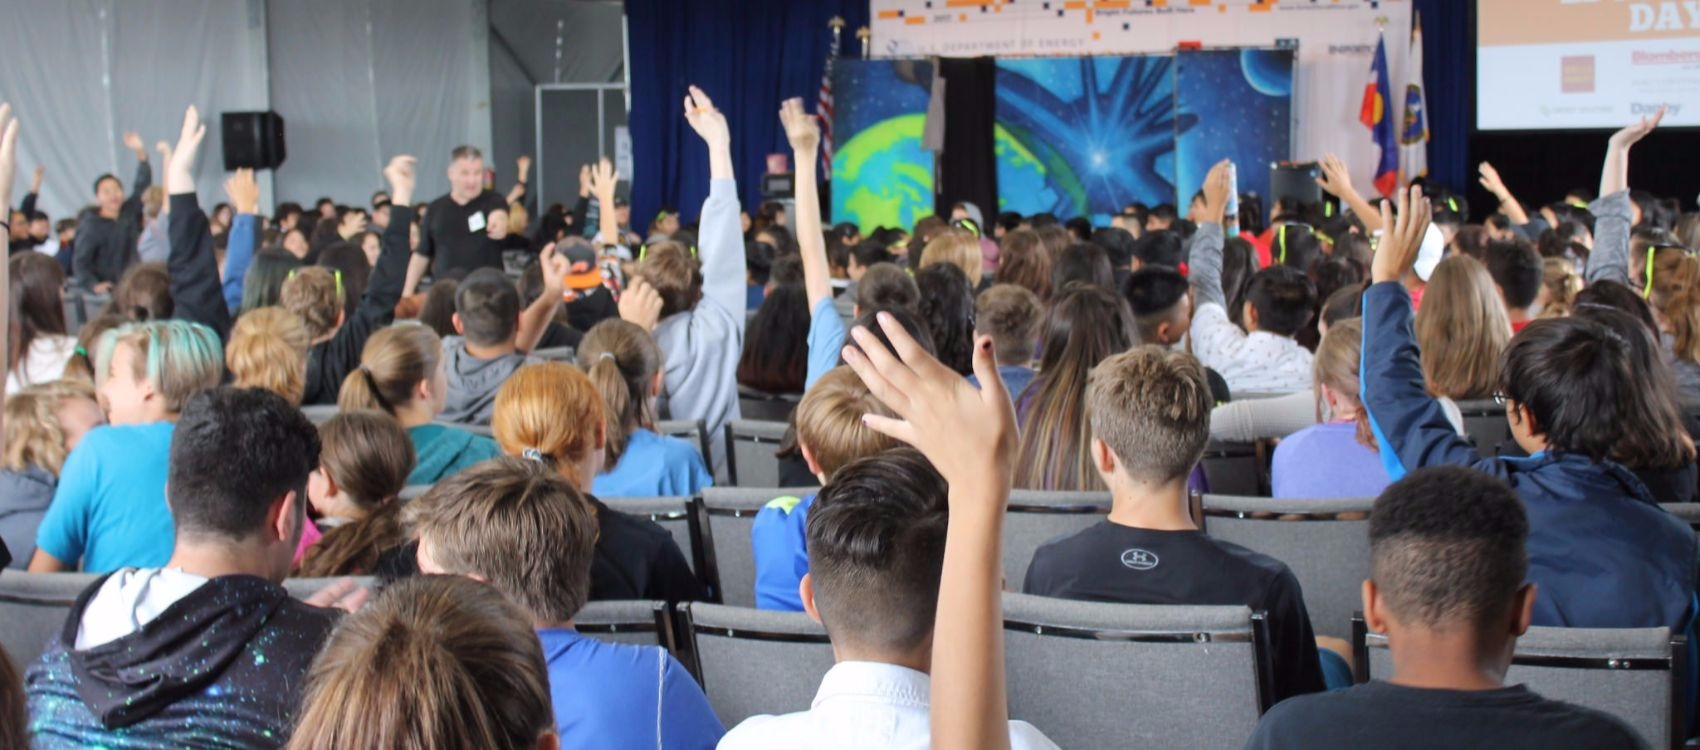 Photo of backs of middle school boys and girls sitting in chairs and raising their hands to answer questions during an education session inside a white tent at Solar Decathlon 2017. The students are facing a stage and a projection screen.